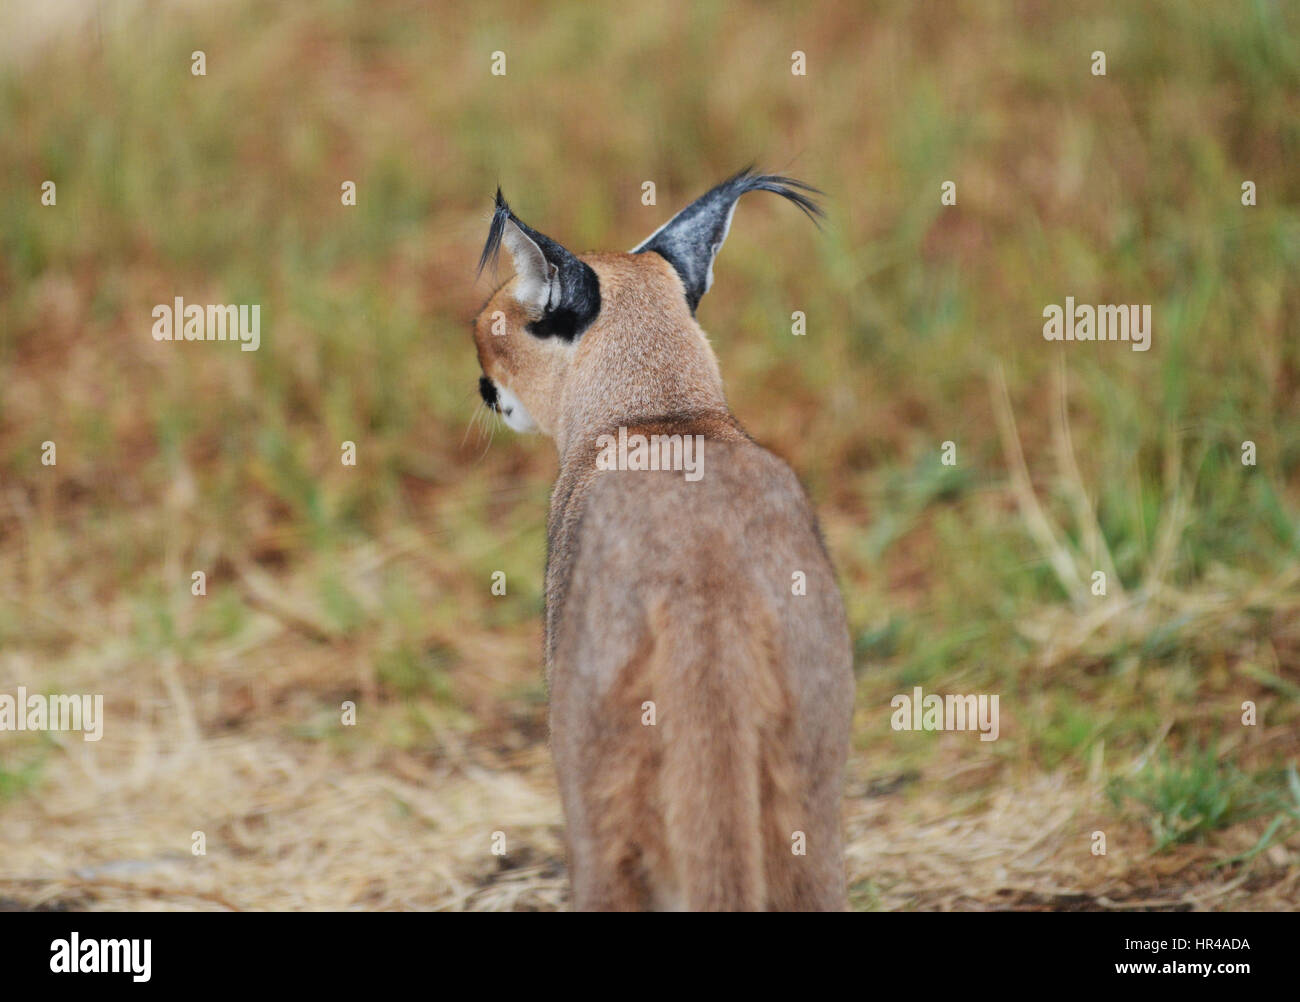 A beautiful Caracal in South Africa. - Stock Image